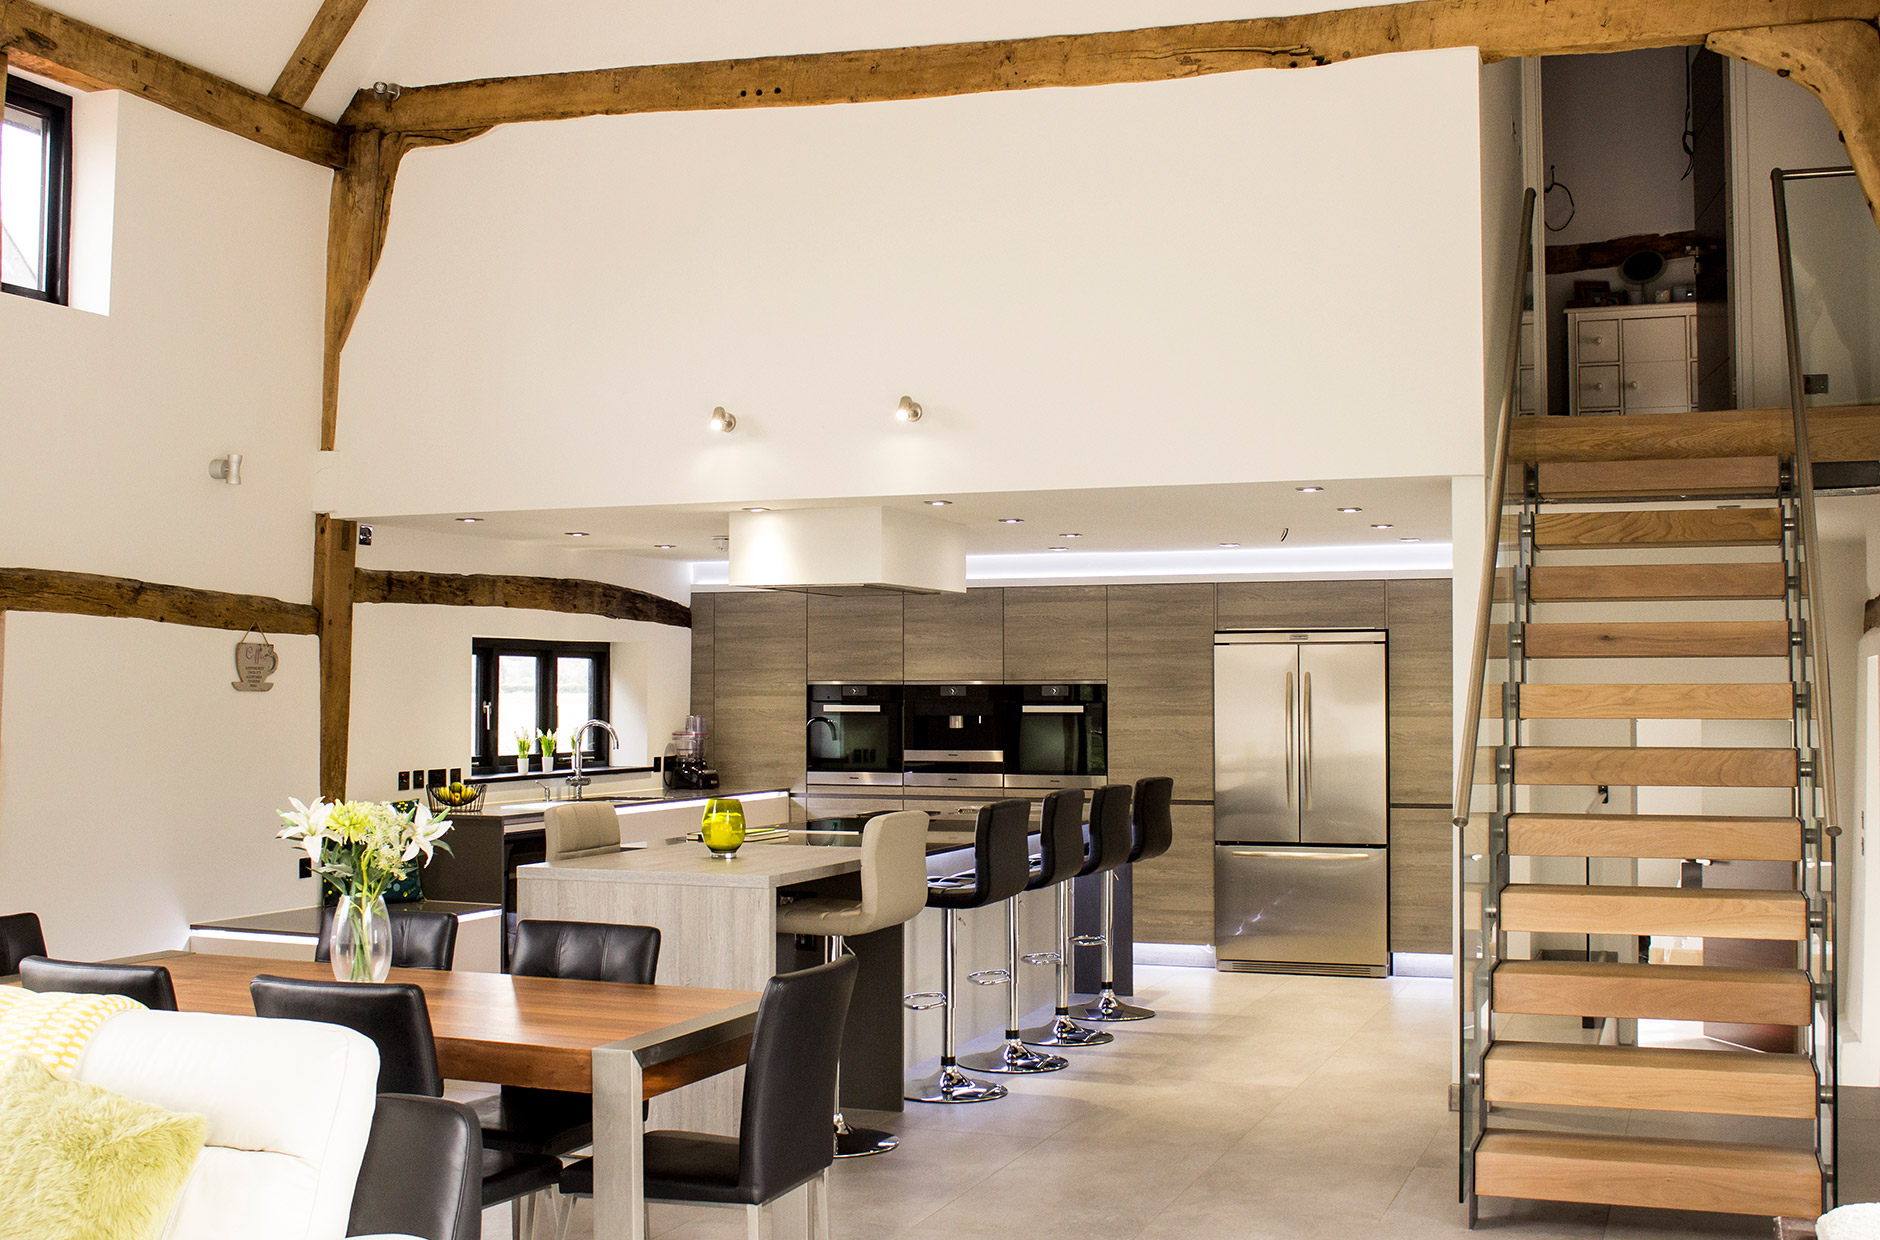 Open Plan Contemporary Kitchen For Barn Conversionu2013woodbridge_slide5